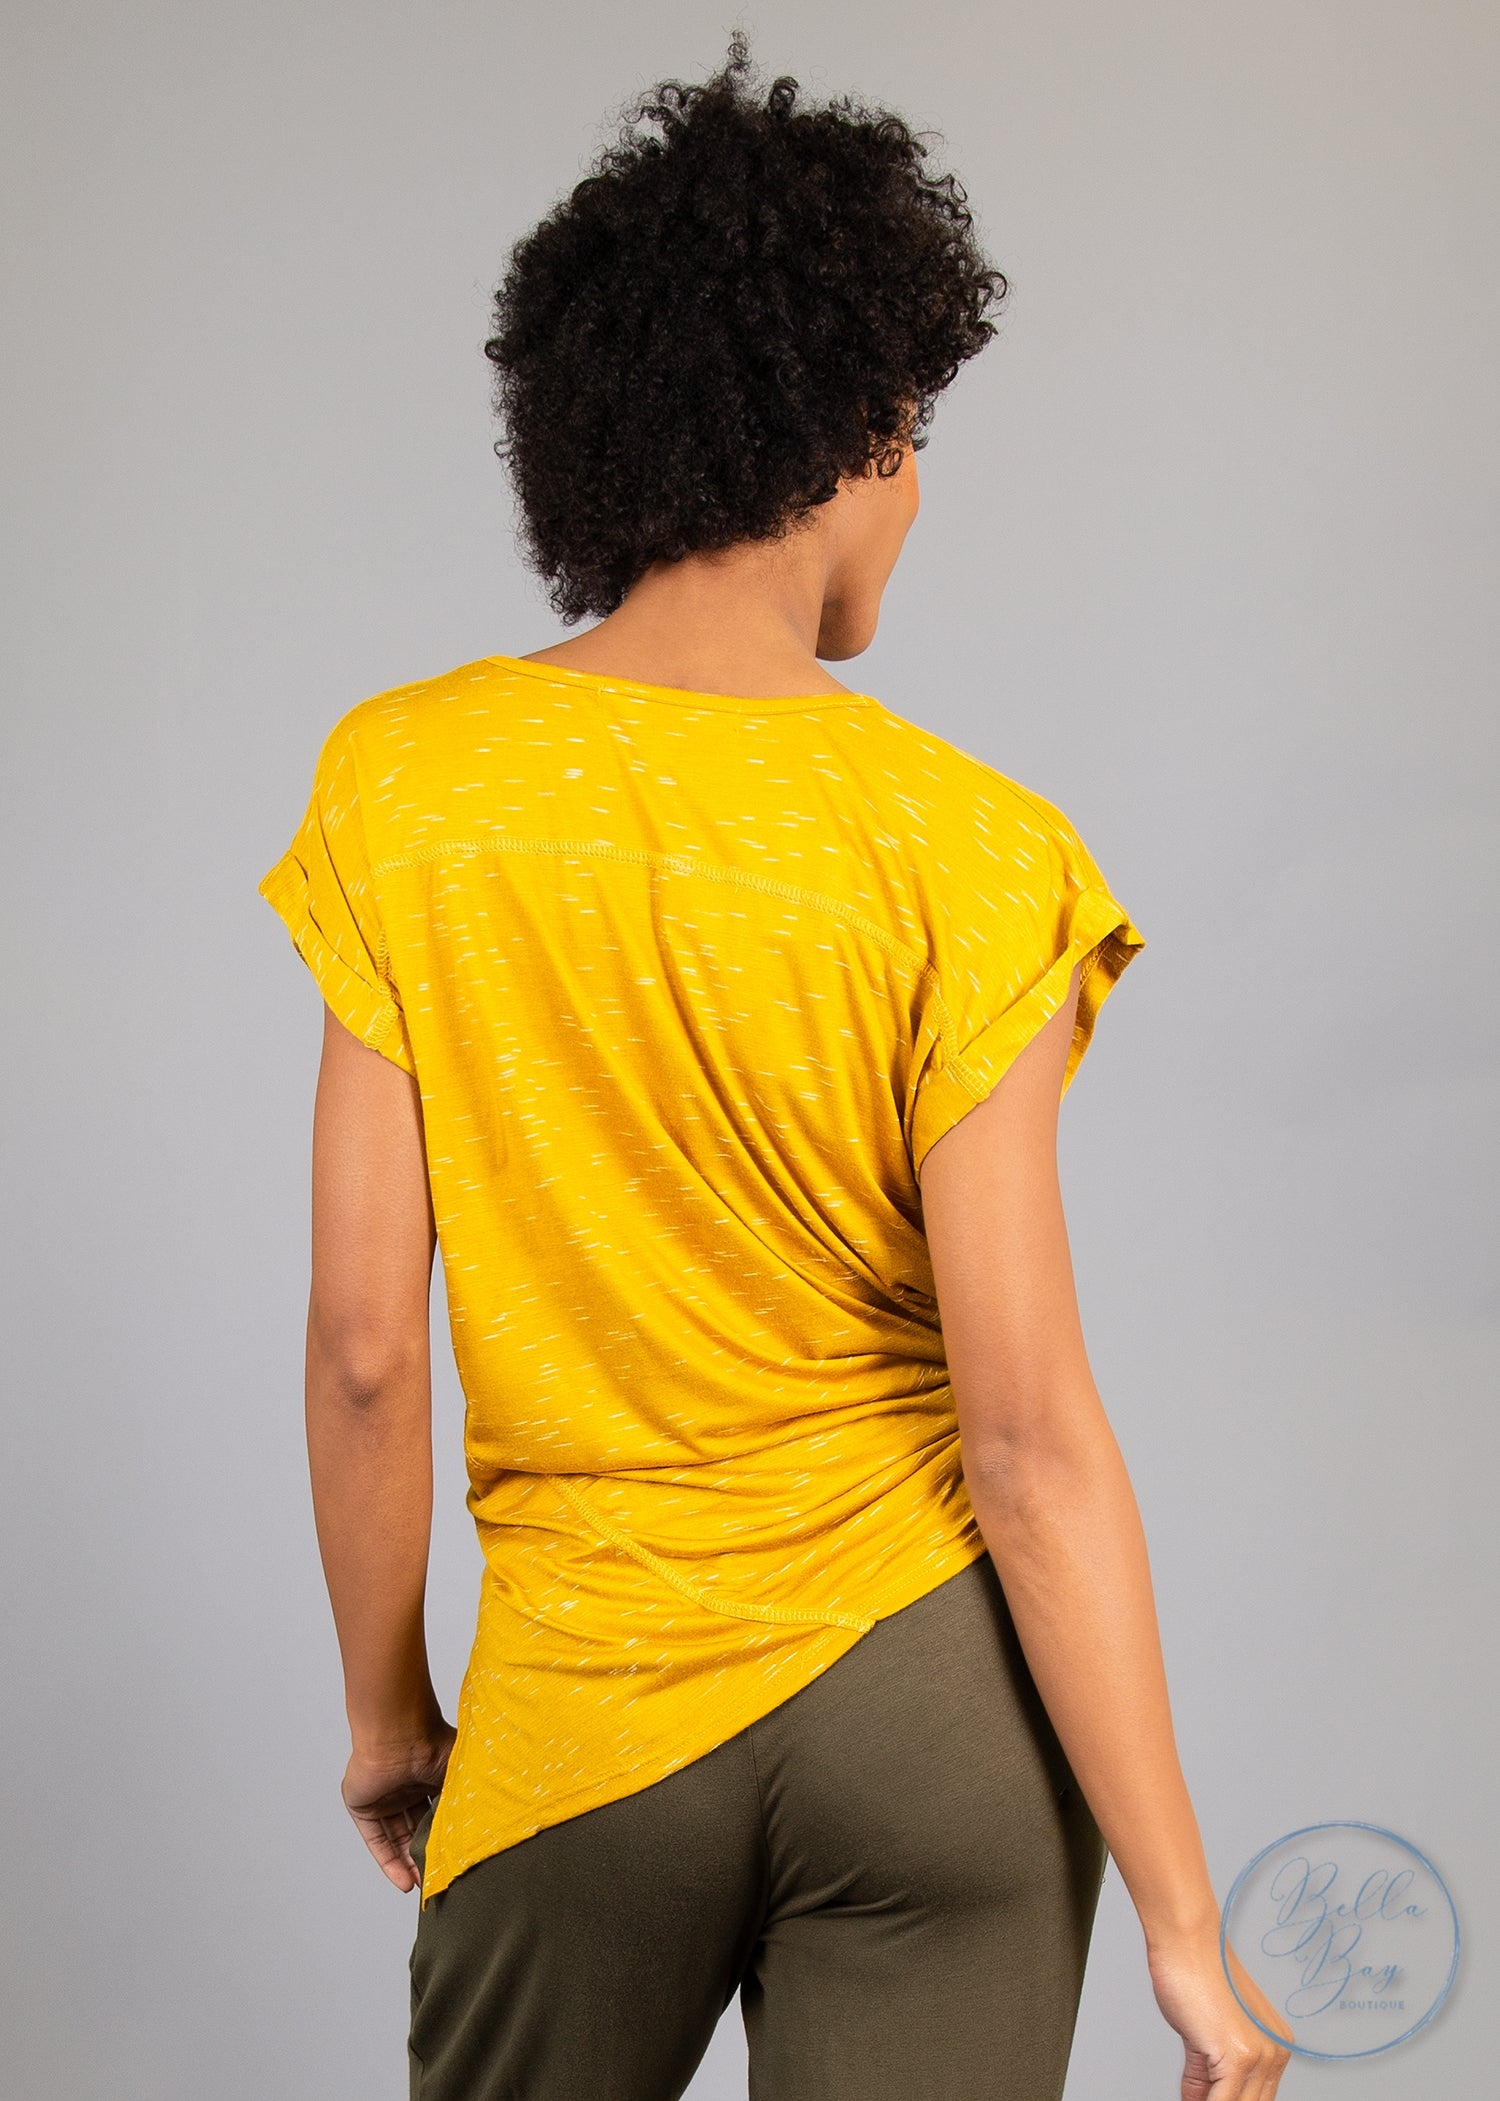 Paisley Raye Tulip Tee- Mustard (L) - Paisley Raye with Bella Bay Boutique, shop now at  https://shopbellabay.com/ or locally in Newport Oregon